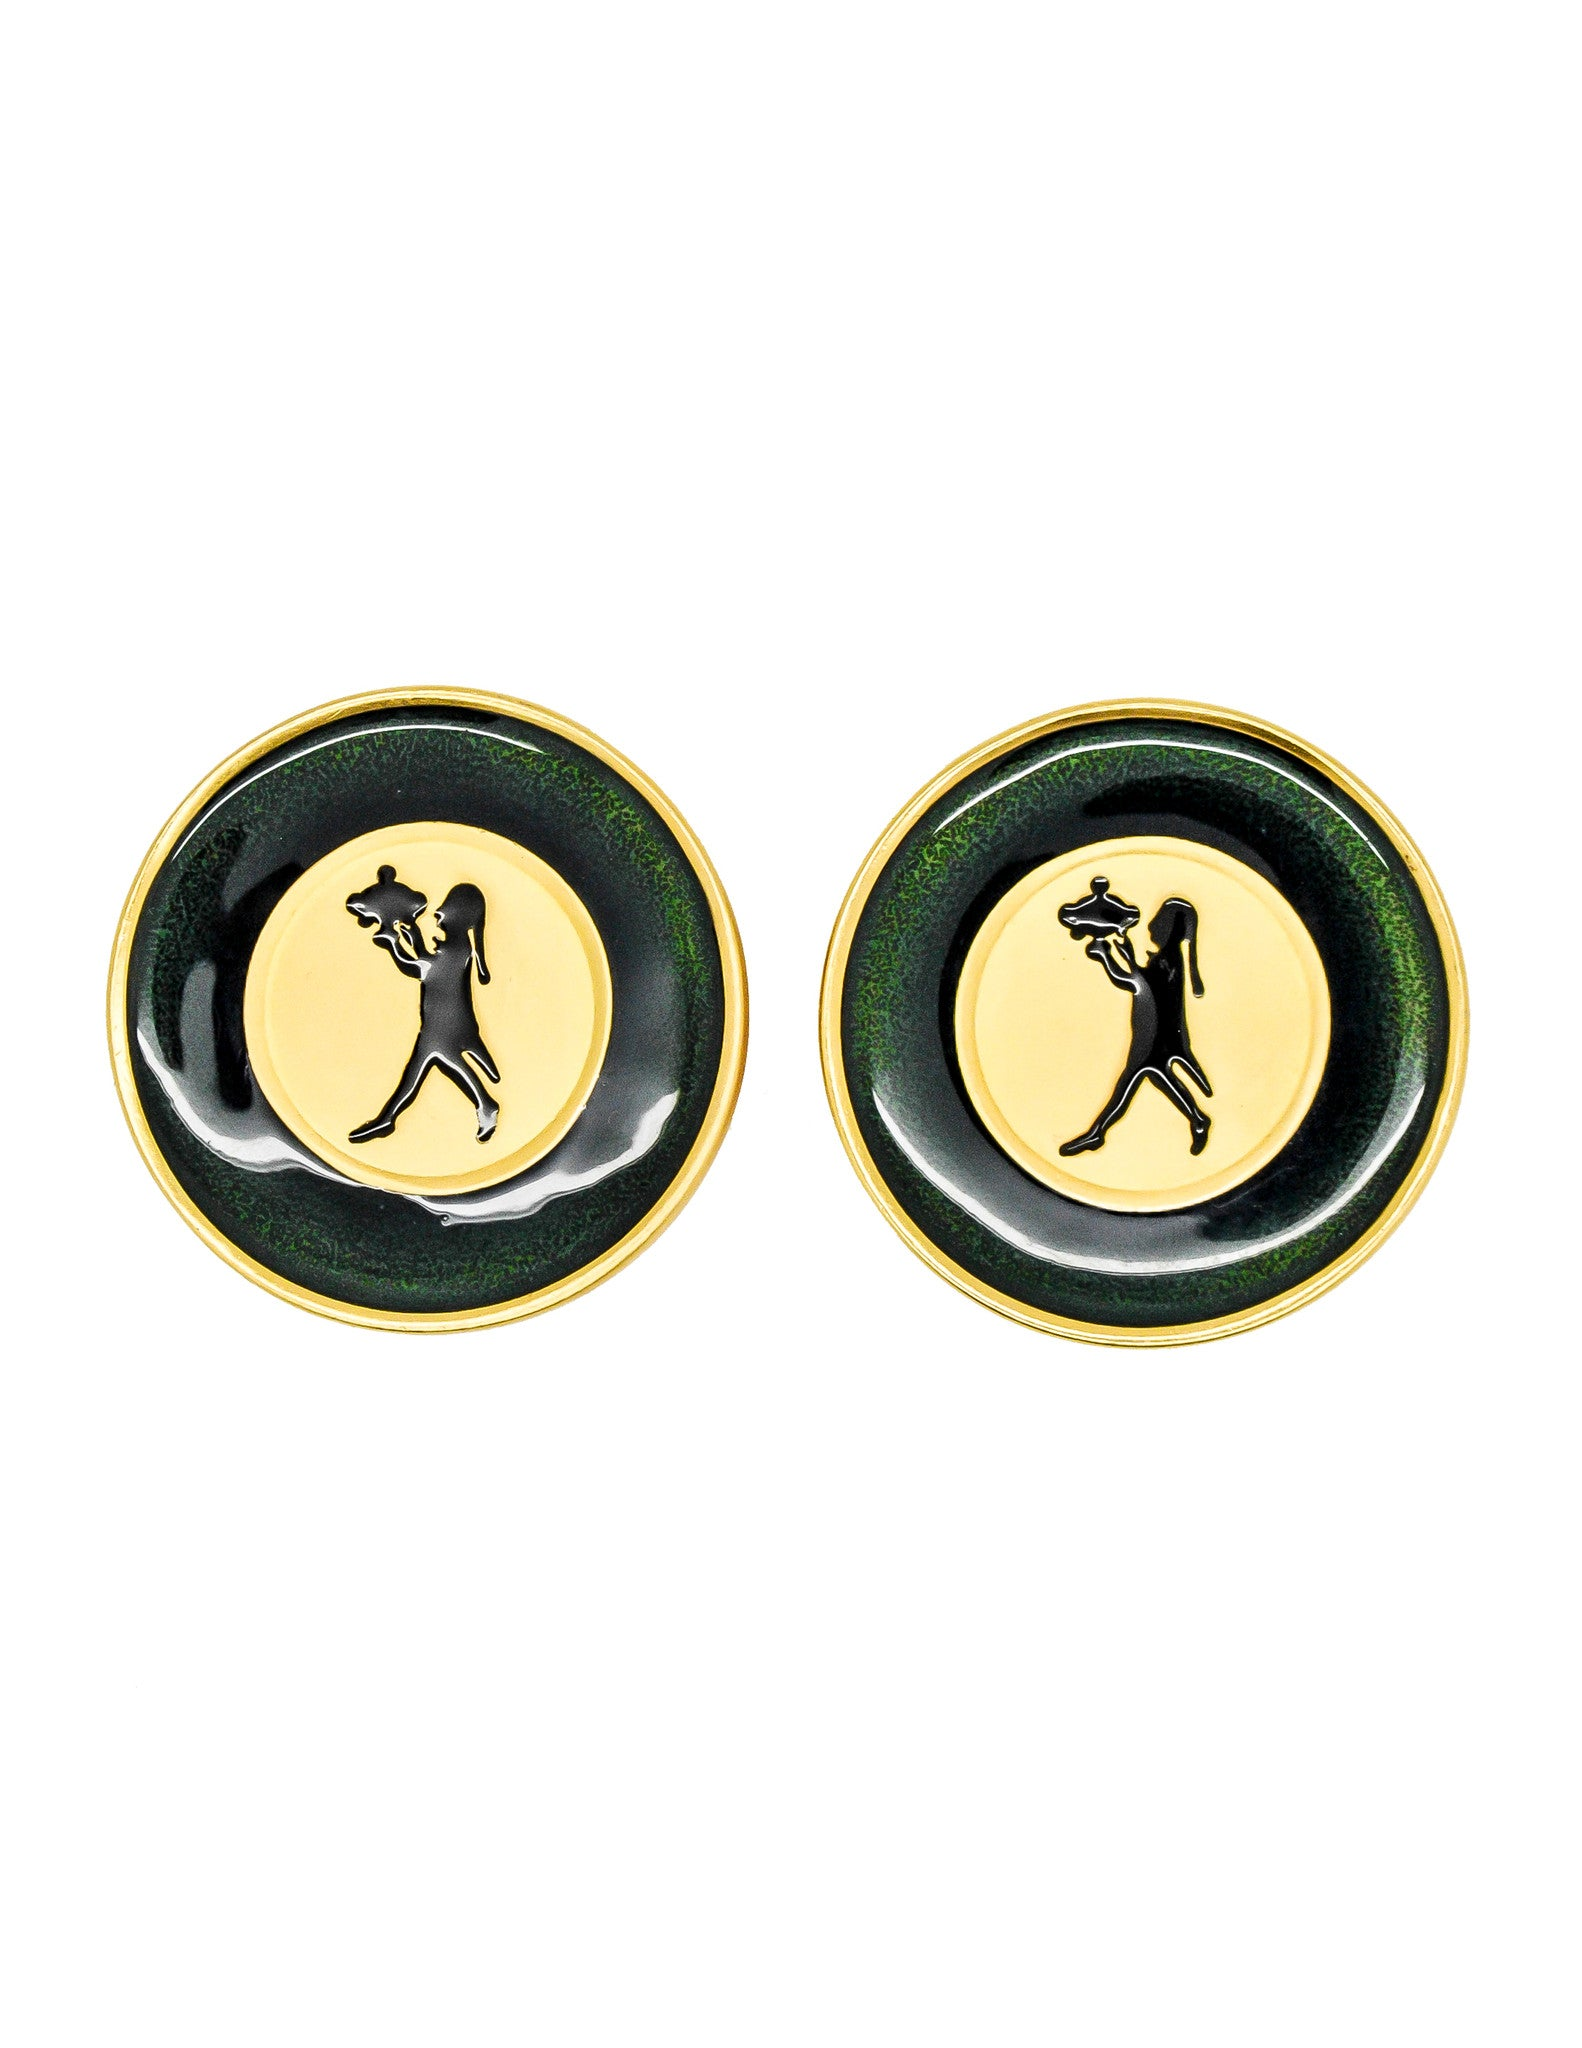 Karl Lagerfeld Vintage Serveur Enamel Disk Earrings - Amarcord Vintage Fashion  - 1